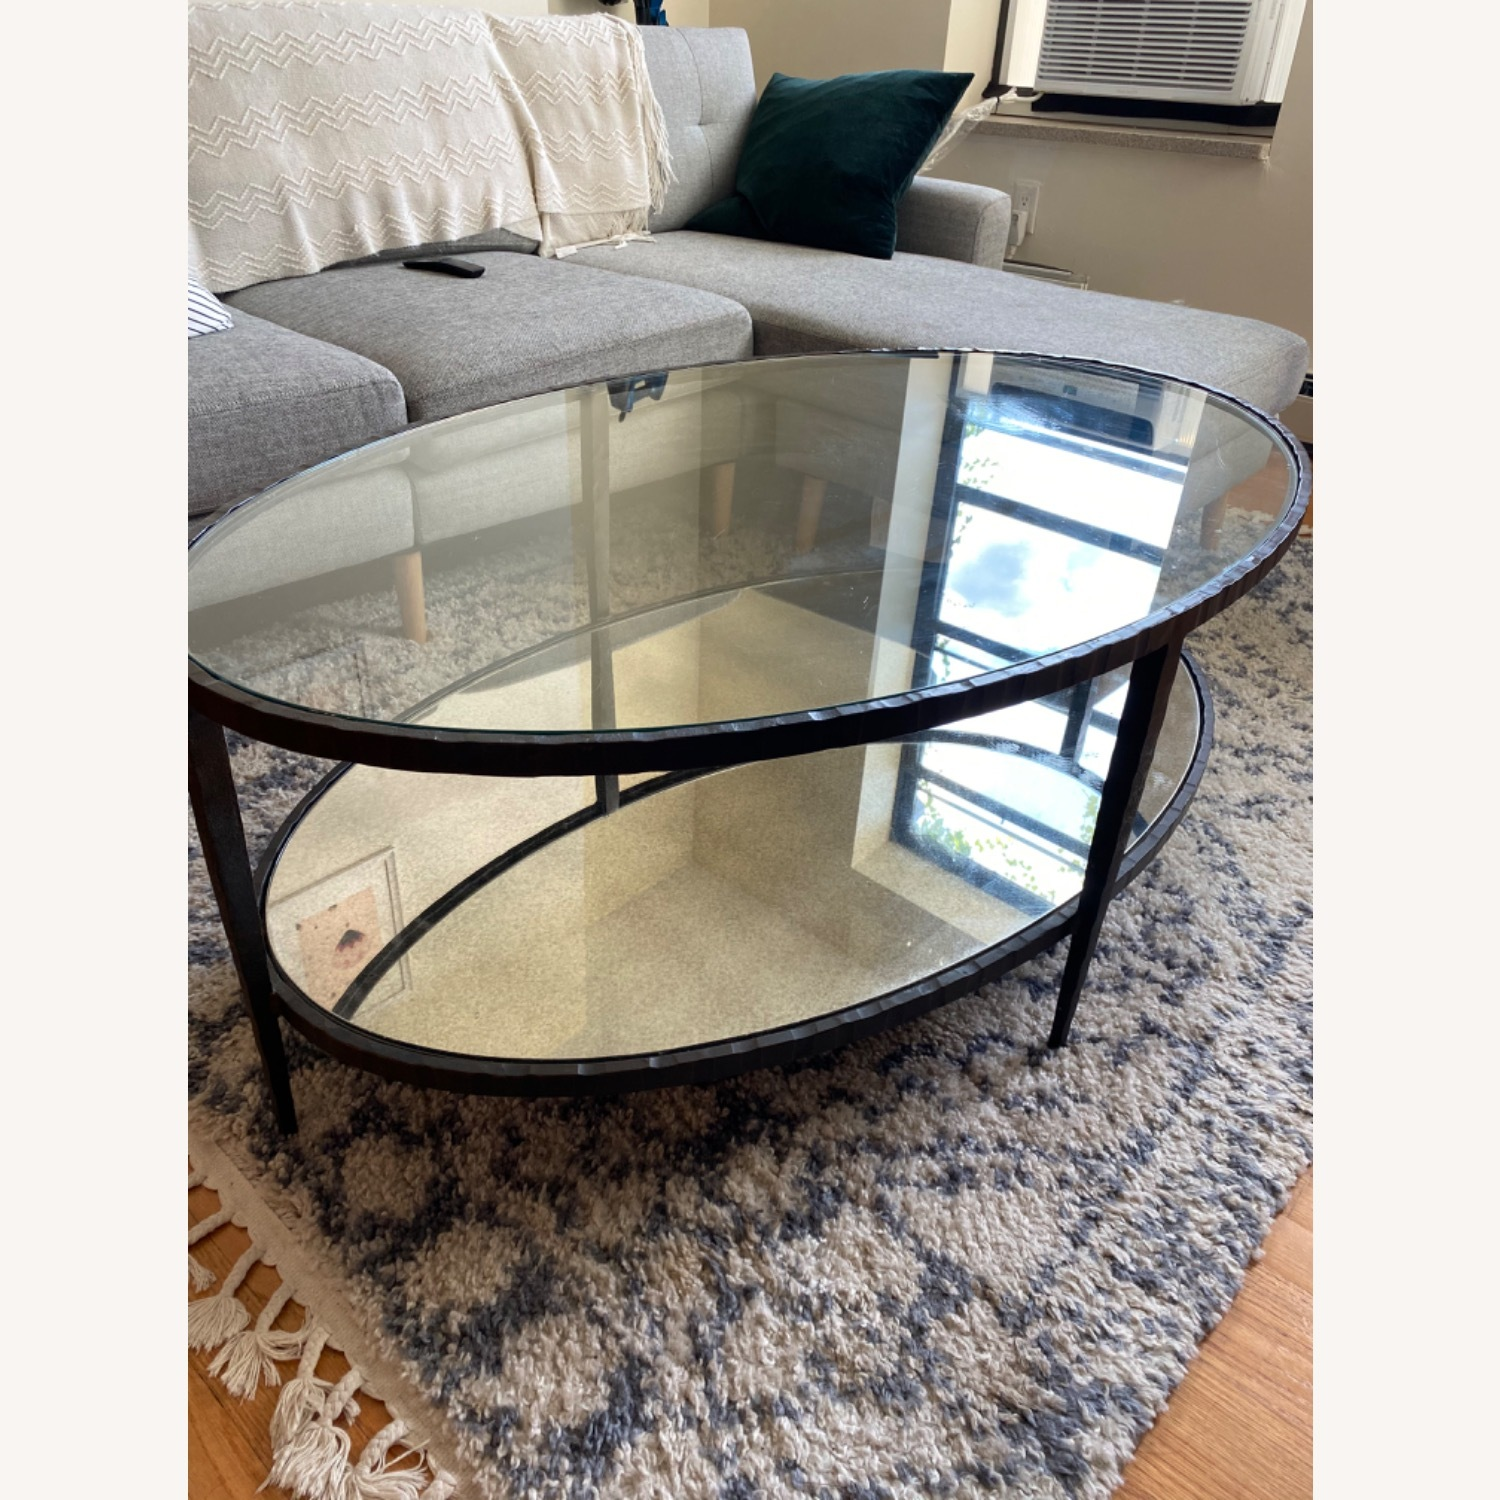 Crate & Barrel Clairemont Oval Coffee Table - image-2